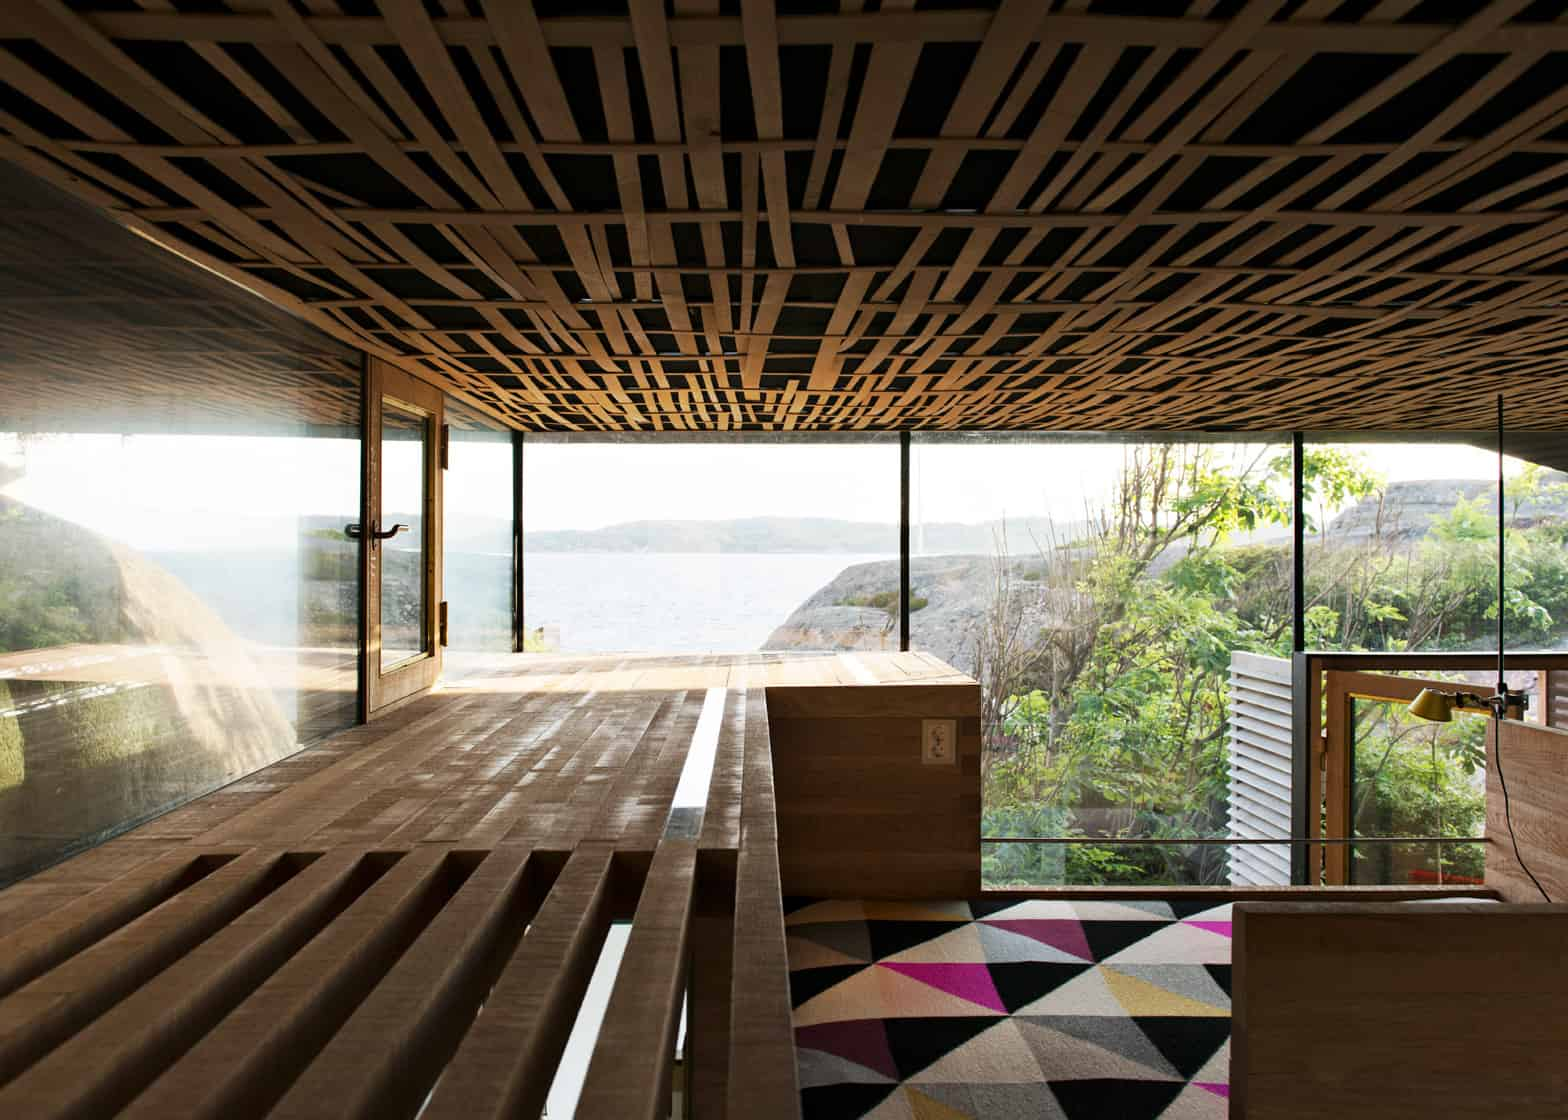 House design rock - View In Gallery